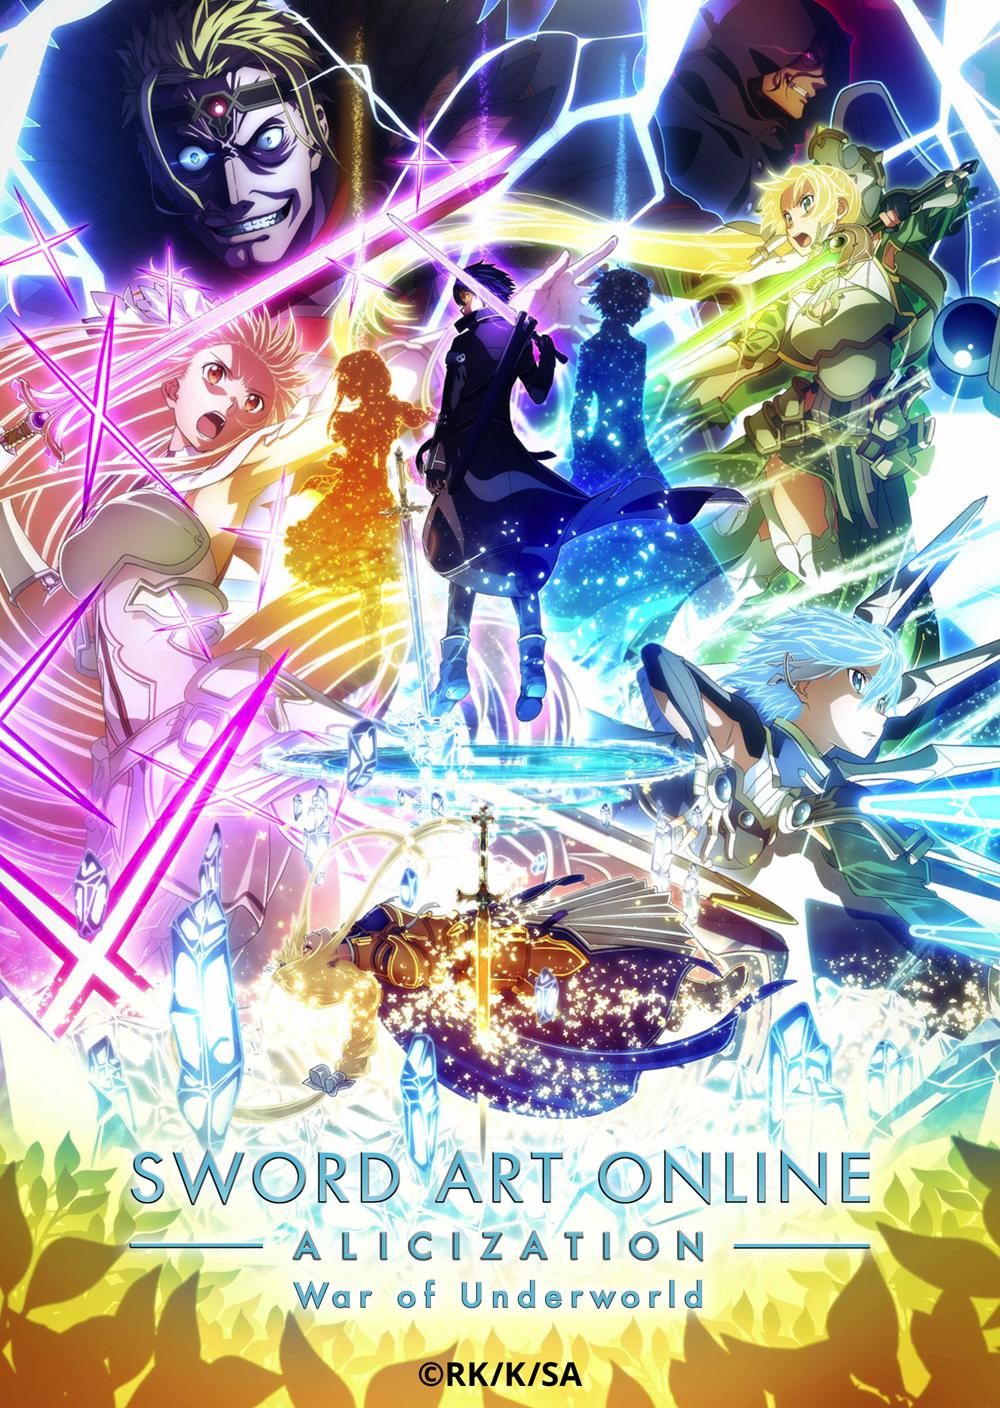 Sword Art Online Alicization War of Underworld Part 2